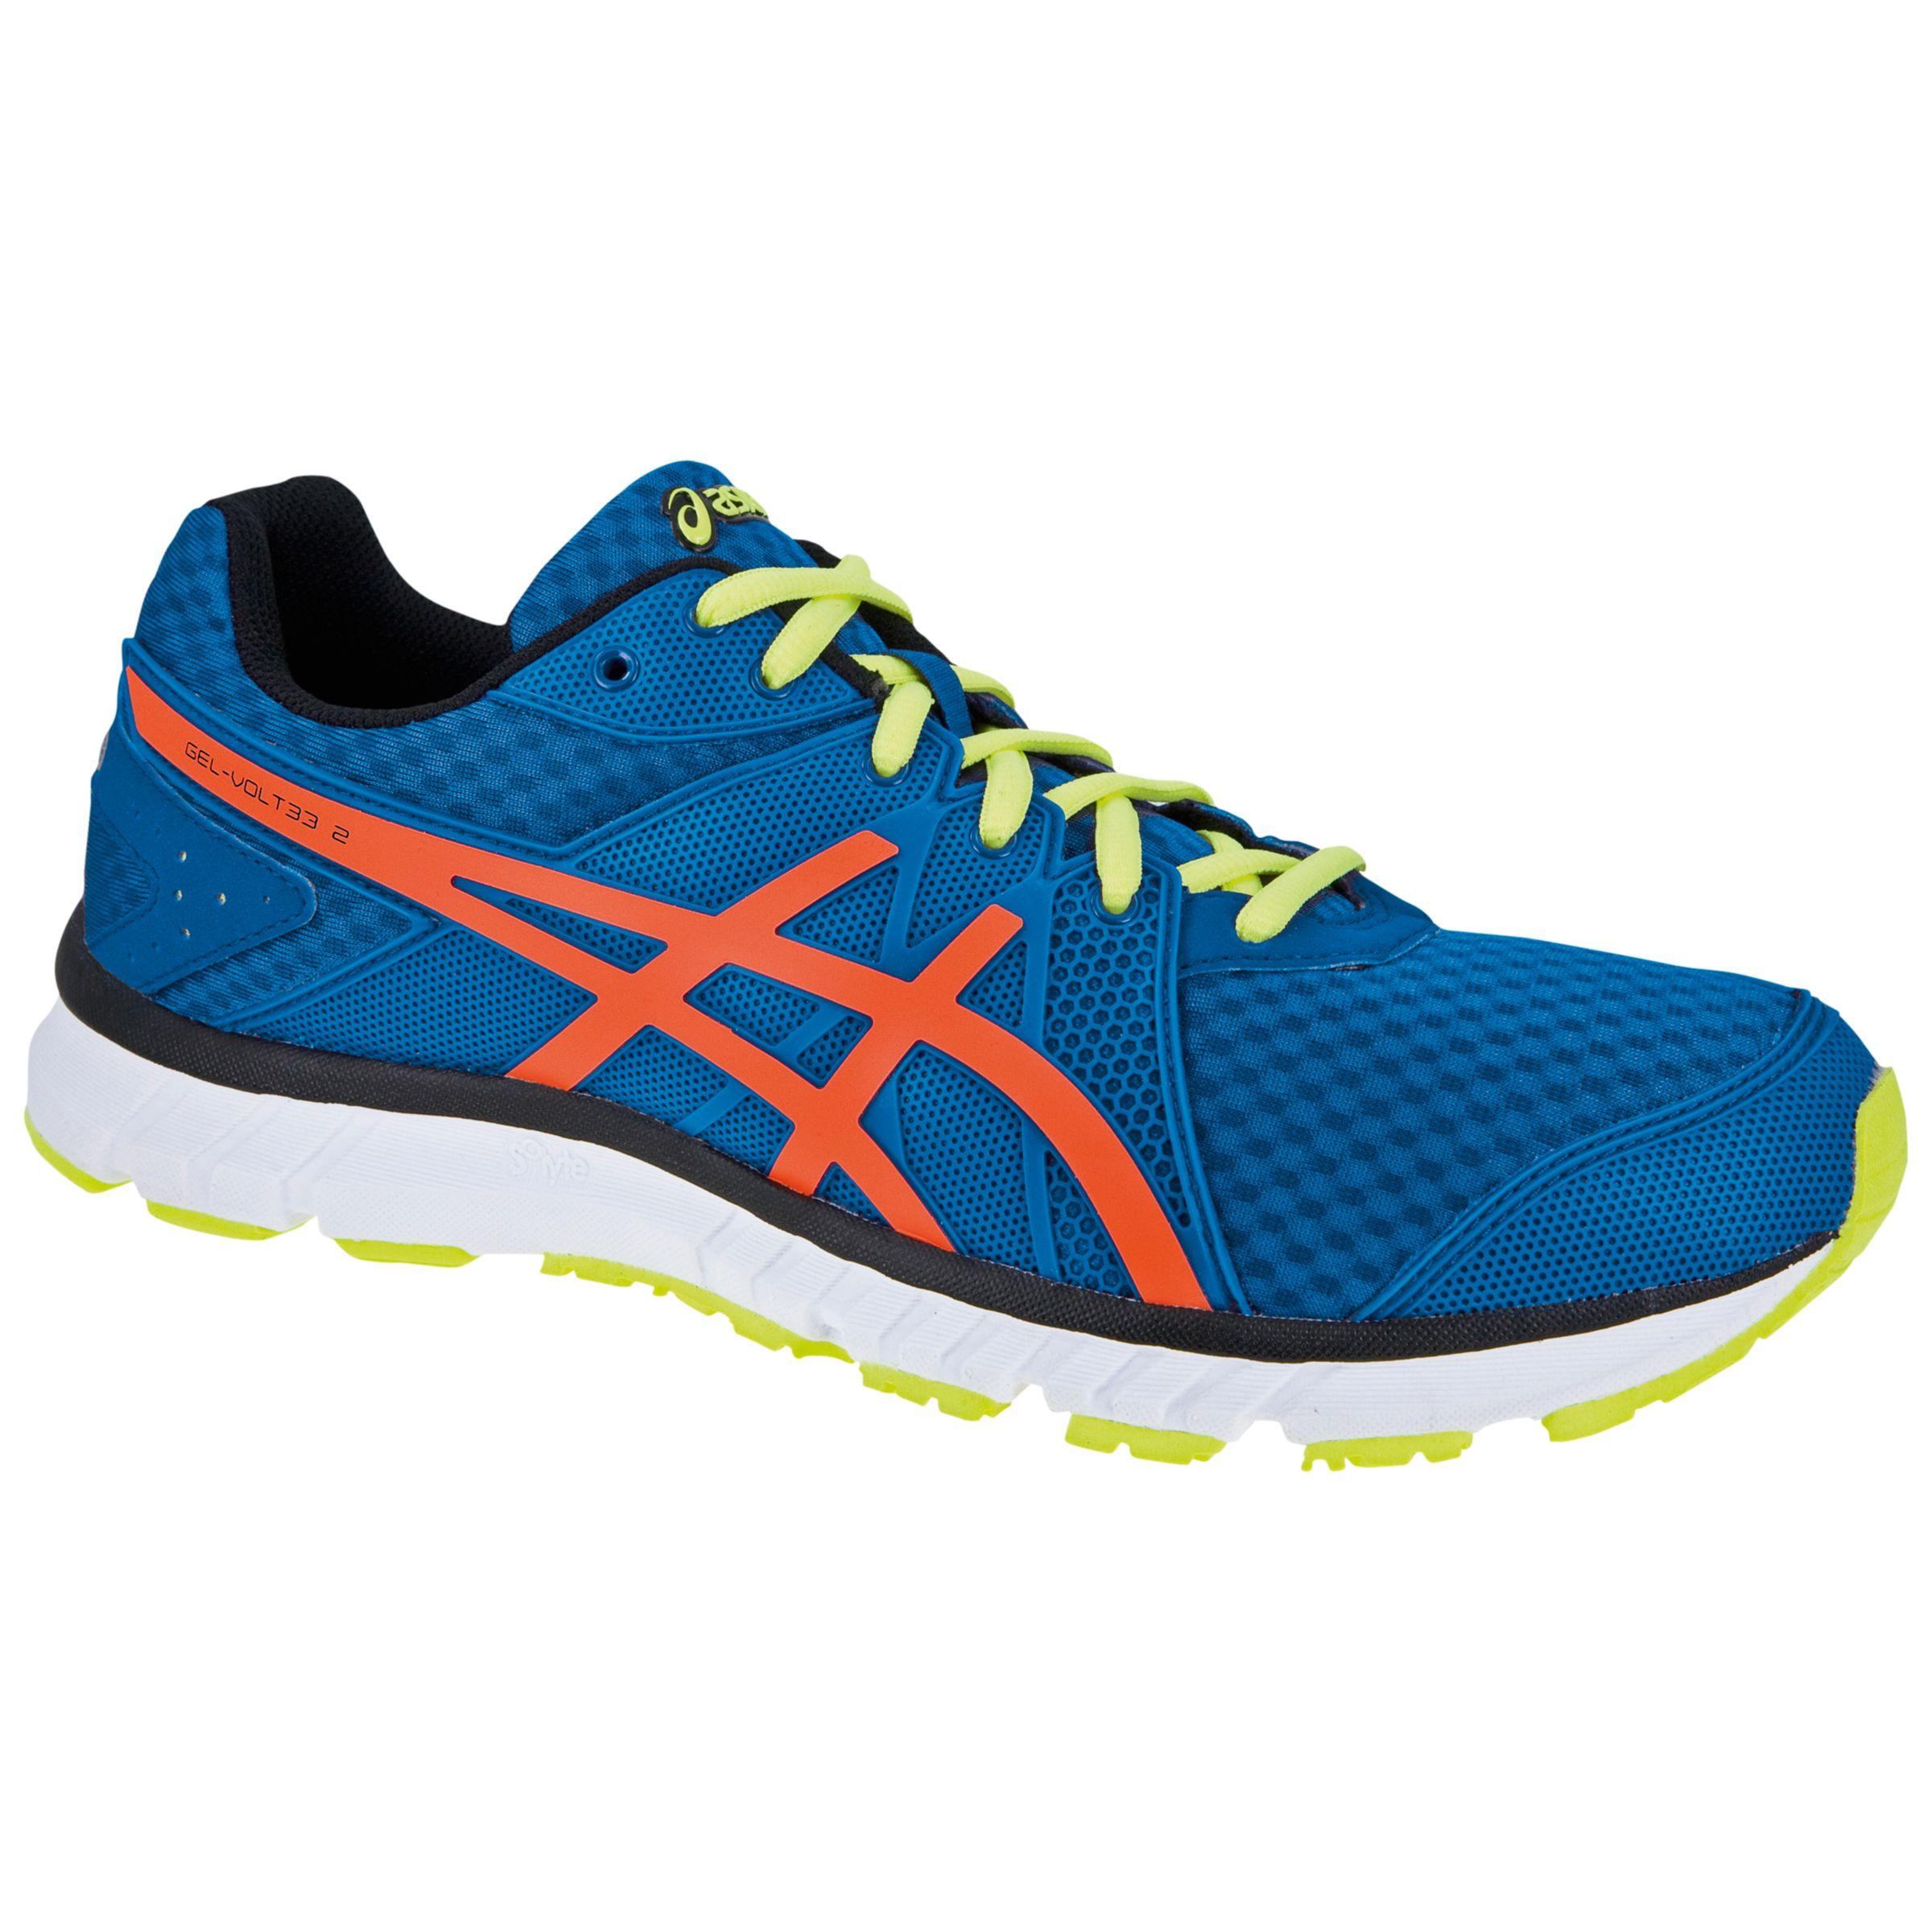 Asics Gel-Volt33 2 Men's Natural Running Shoes, Blue